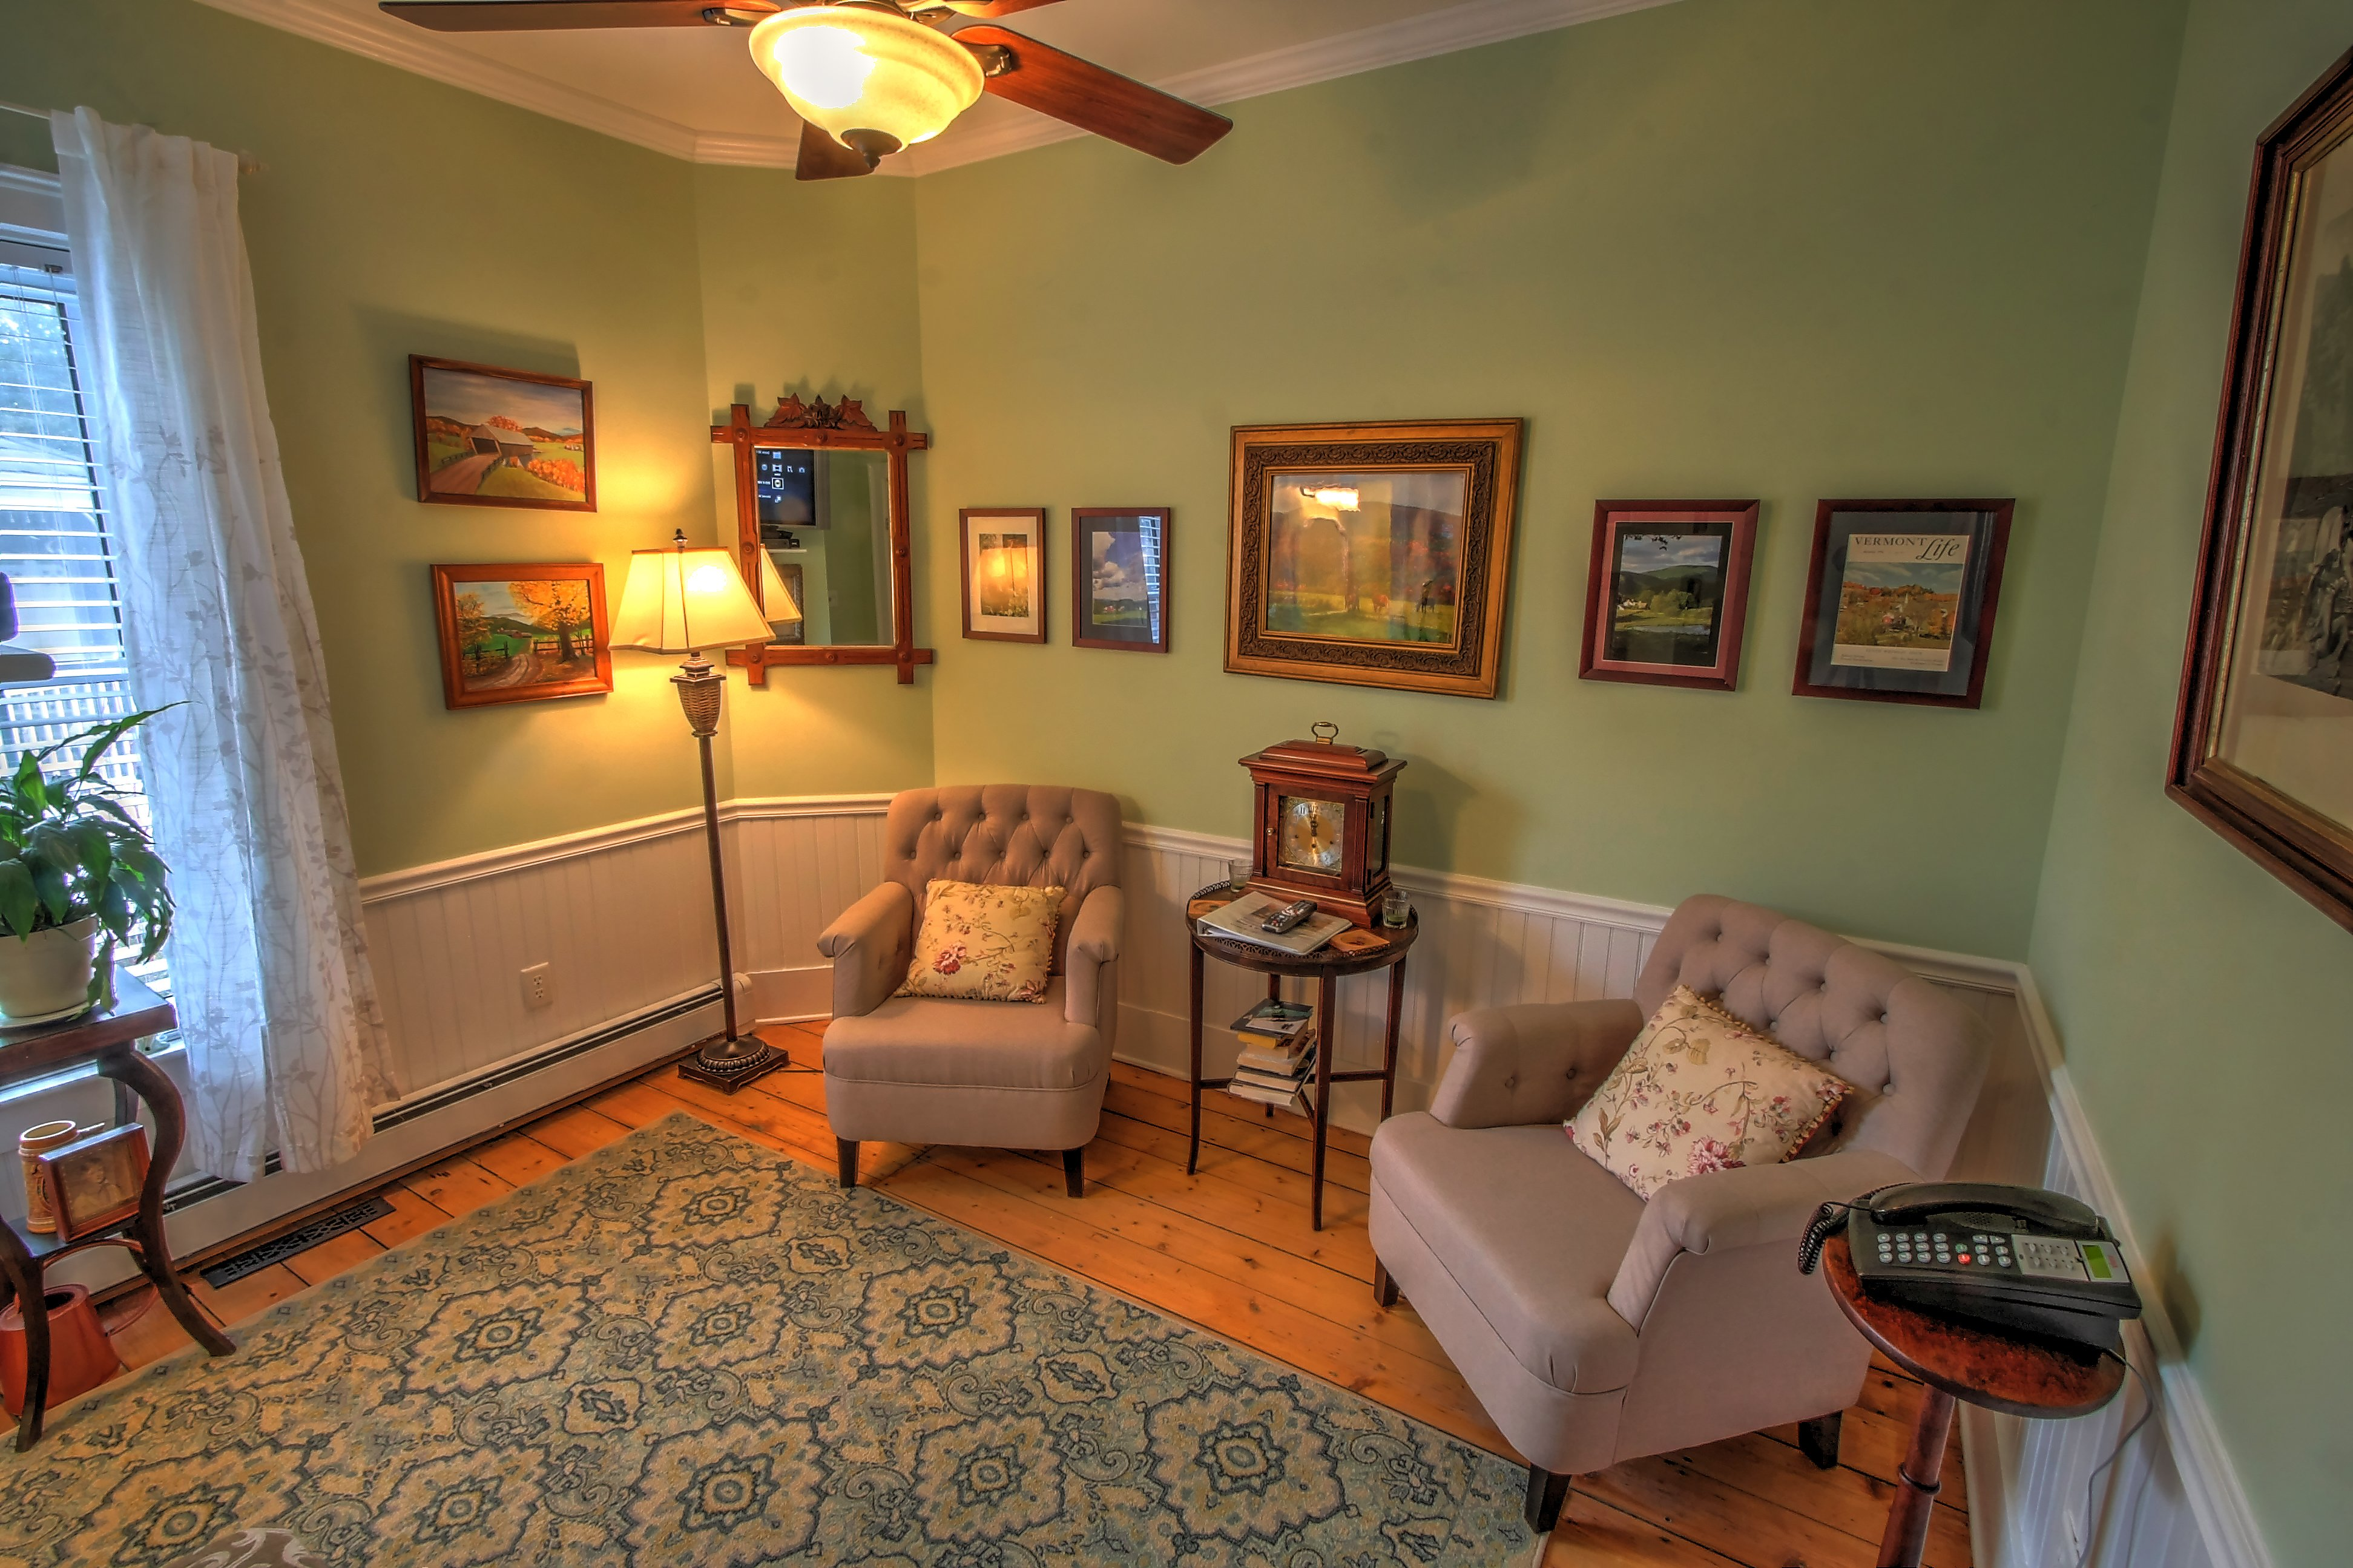 inn and b a would stay wedding weekend downtown place in during bed weddings breakfast fantastic burlington family she to victorian vermont made for treasure boutique chic be agreed img that blog